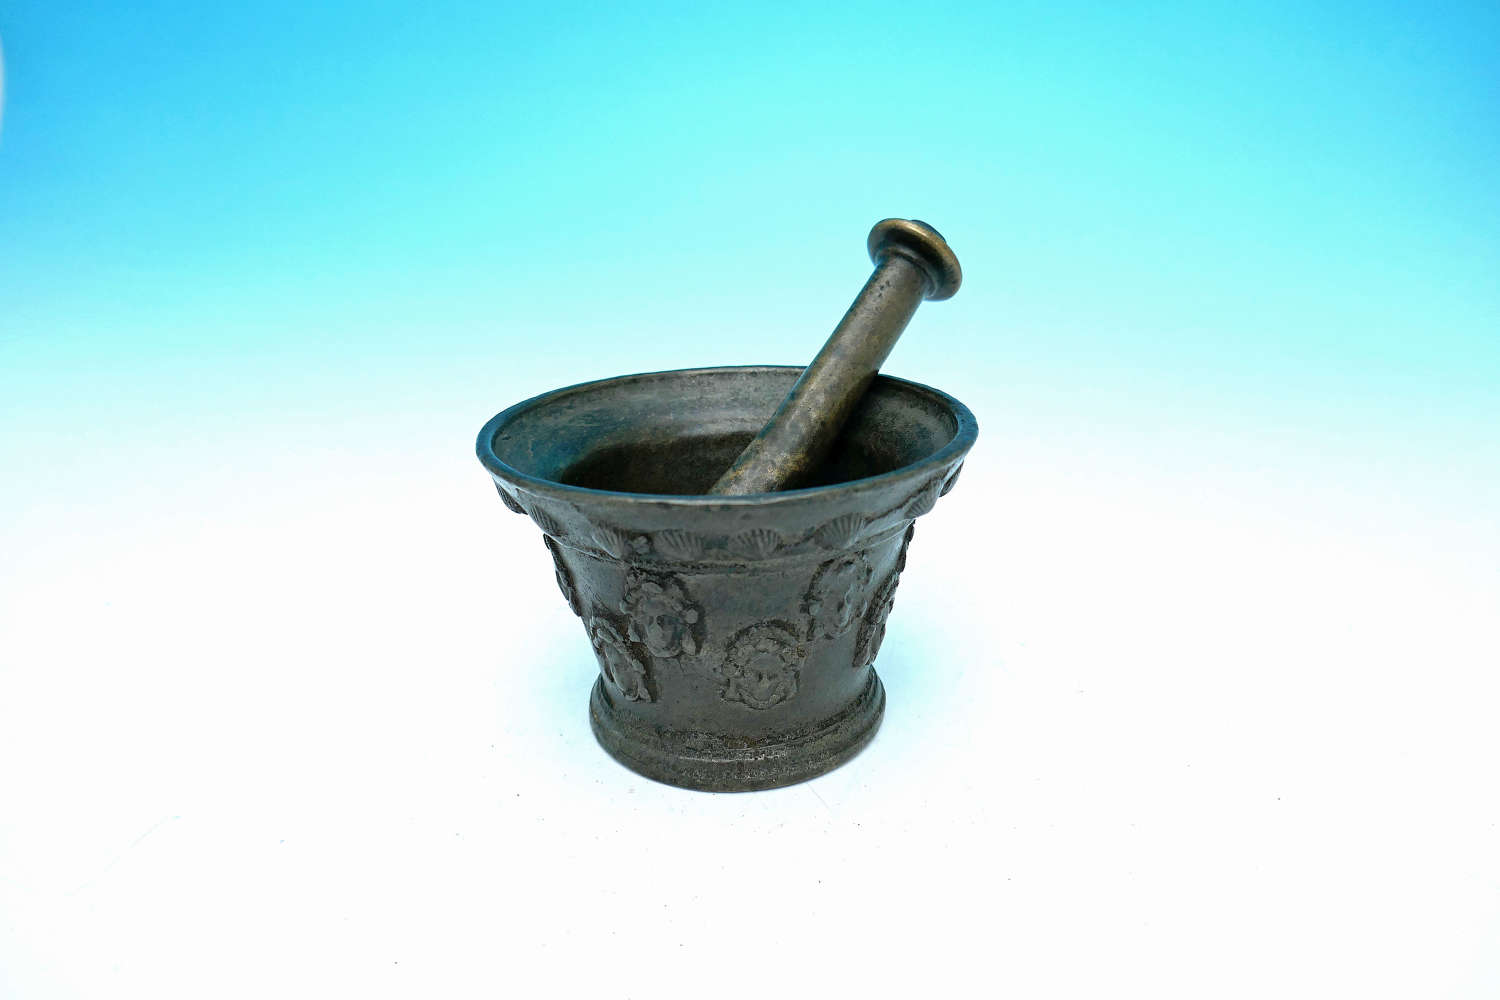 Antique Metalware 16thc / 17thc Small Bronze Pestle & Mortar. French.